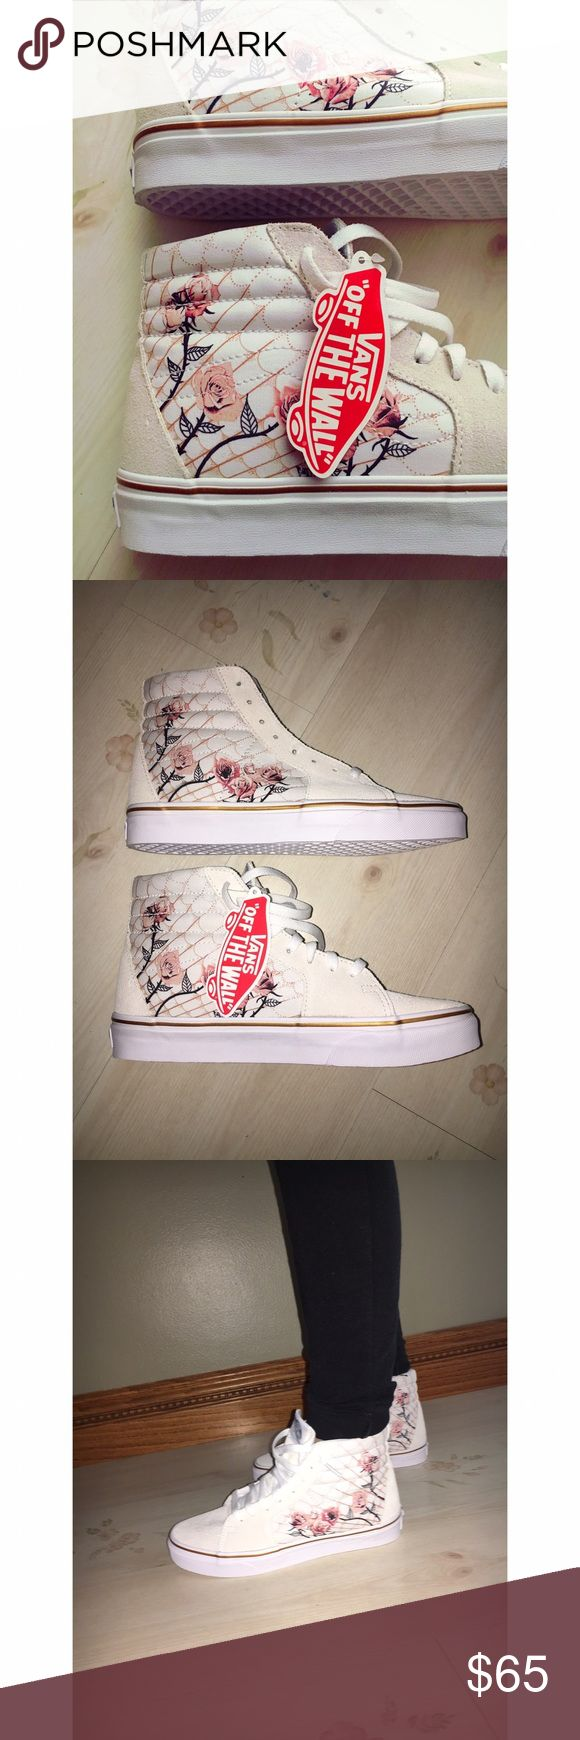 NWT Vans high tops with rose print These are so adorable, but unfortunately too large. Brand new, never worn. Size is women's 8, men's 6.5 but they definitely run a little big. Off white suede with canvas on the side where the floral print is. Thank you for looking! Vans Shoes Sneakers